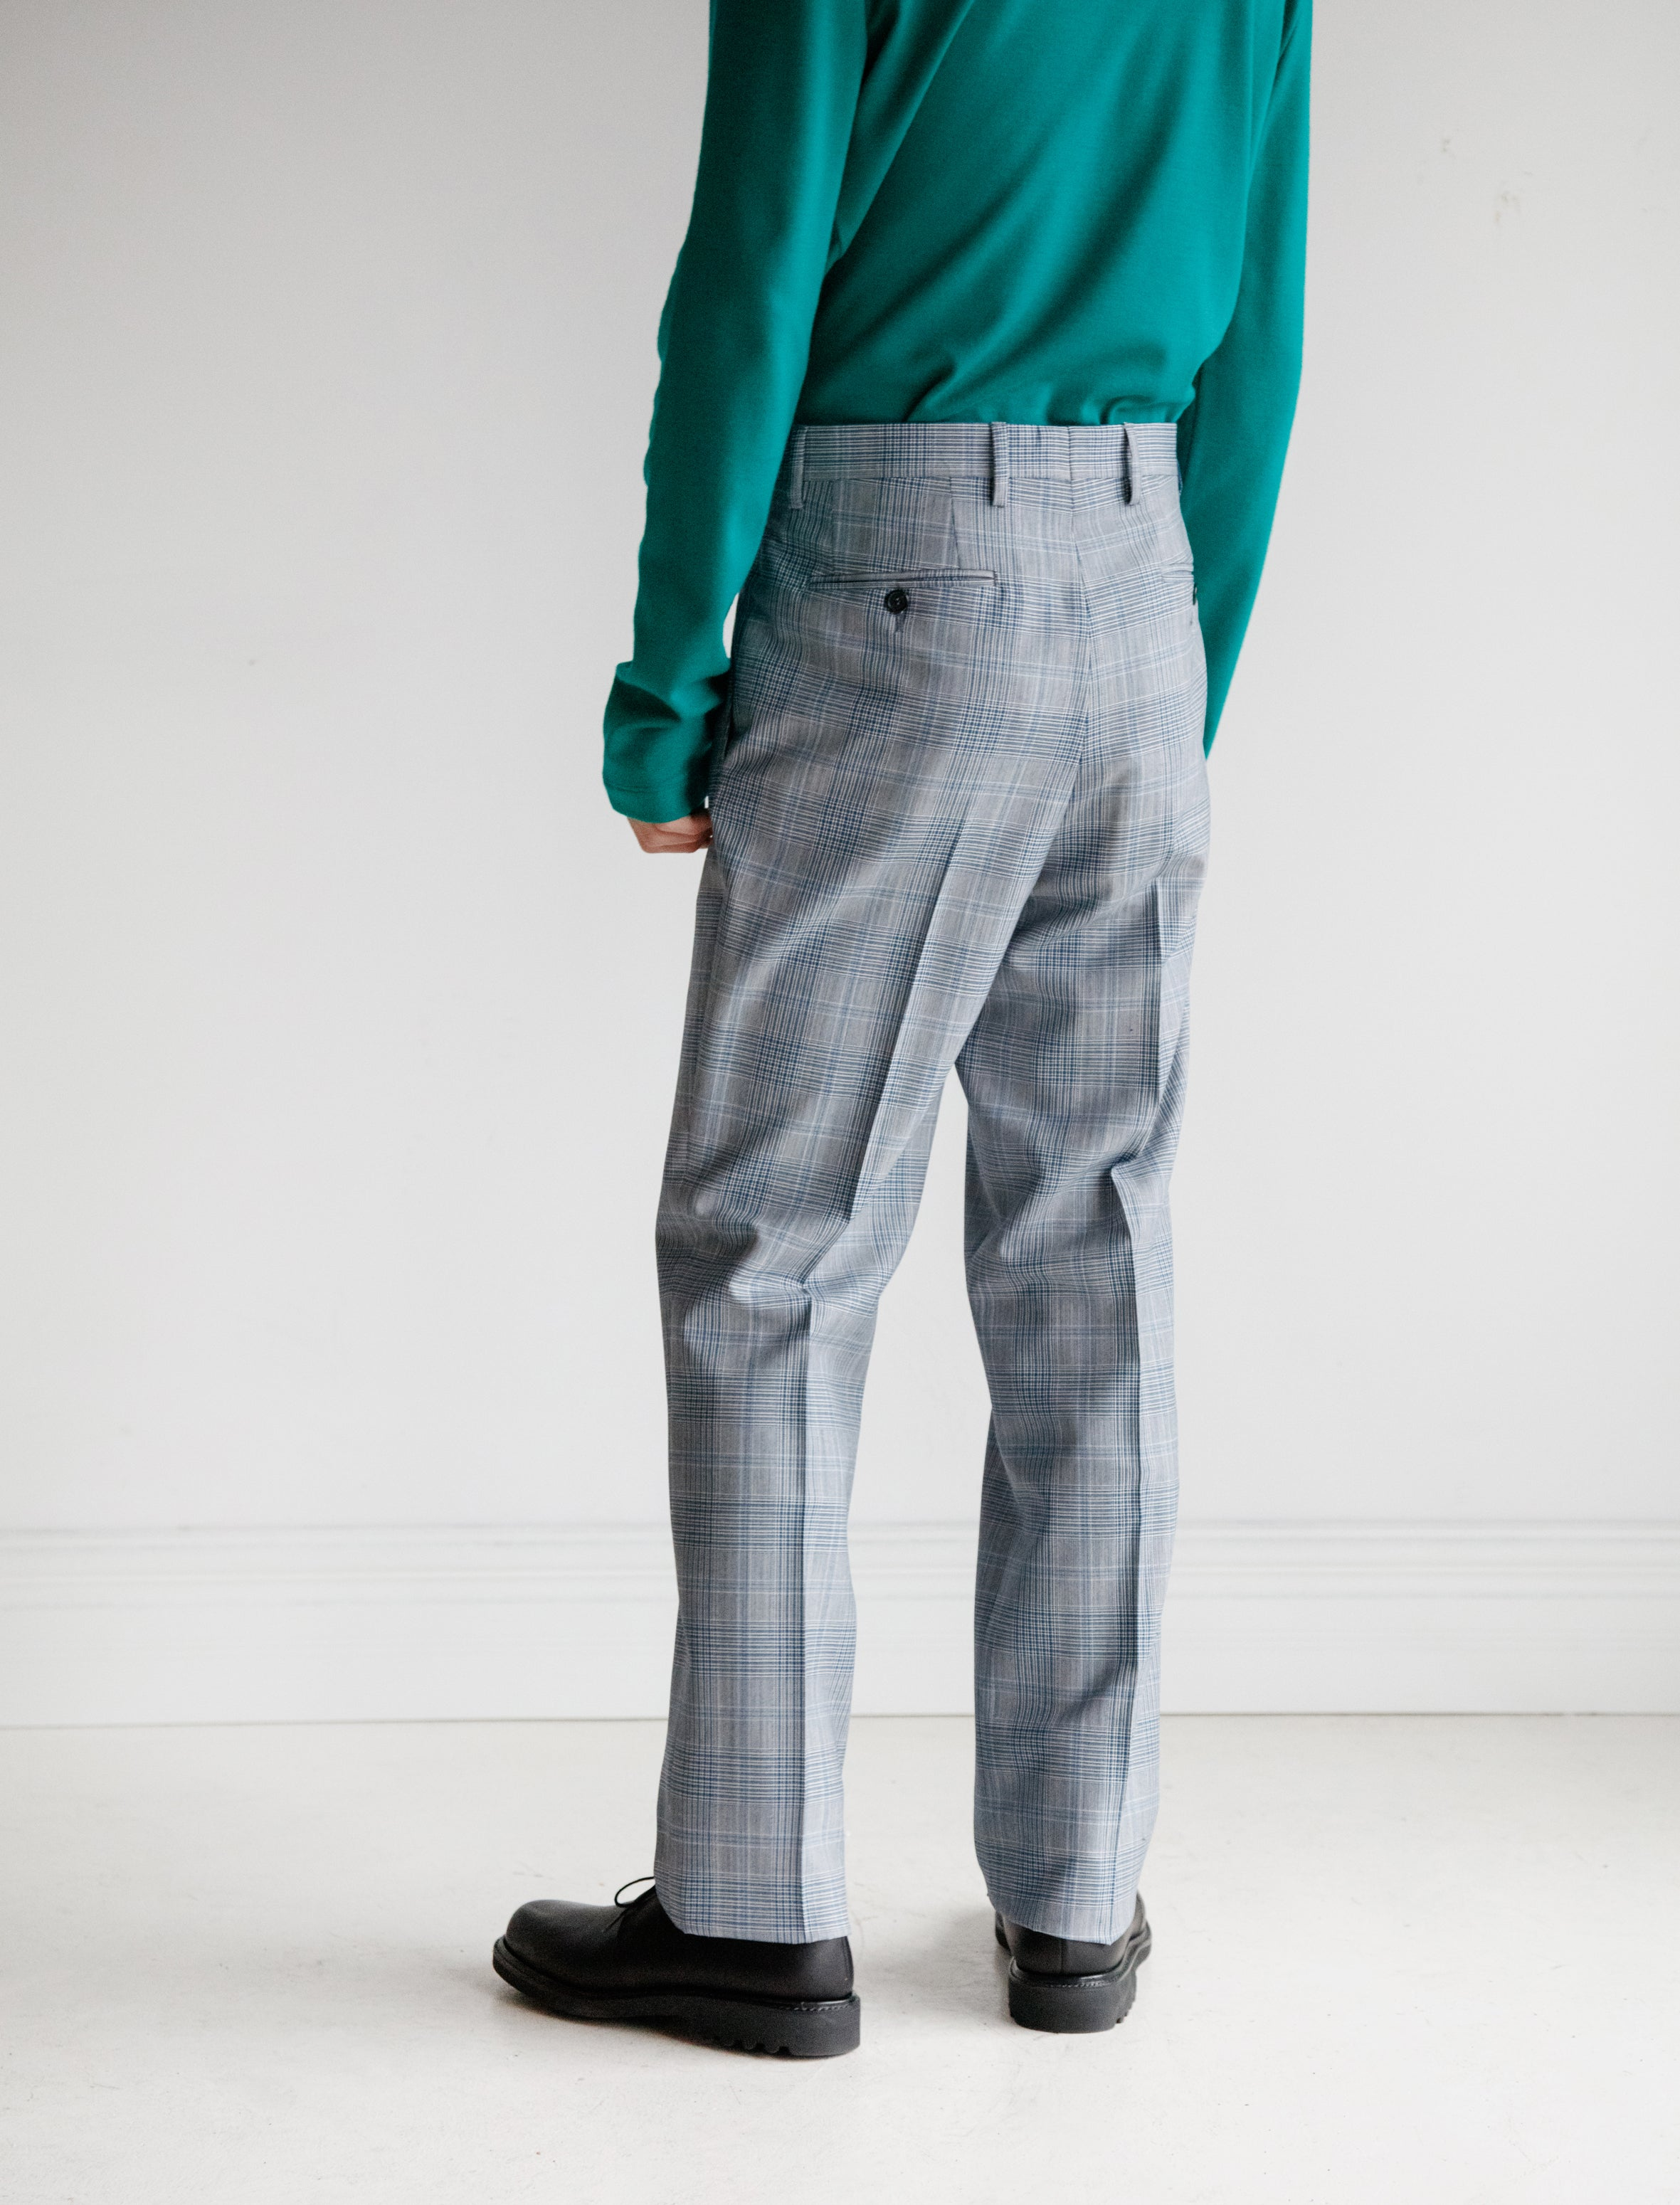 Glen Plaid Plainweave Wool Trouser